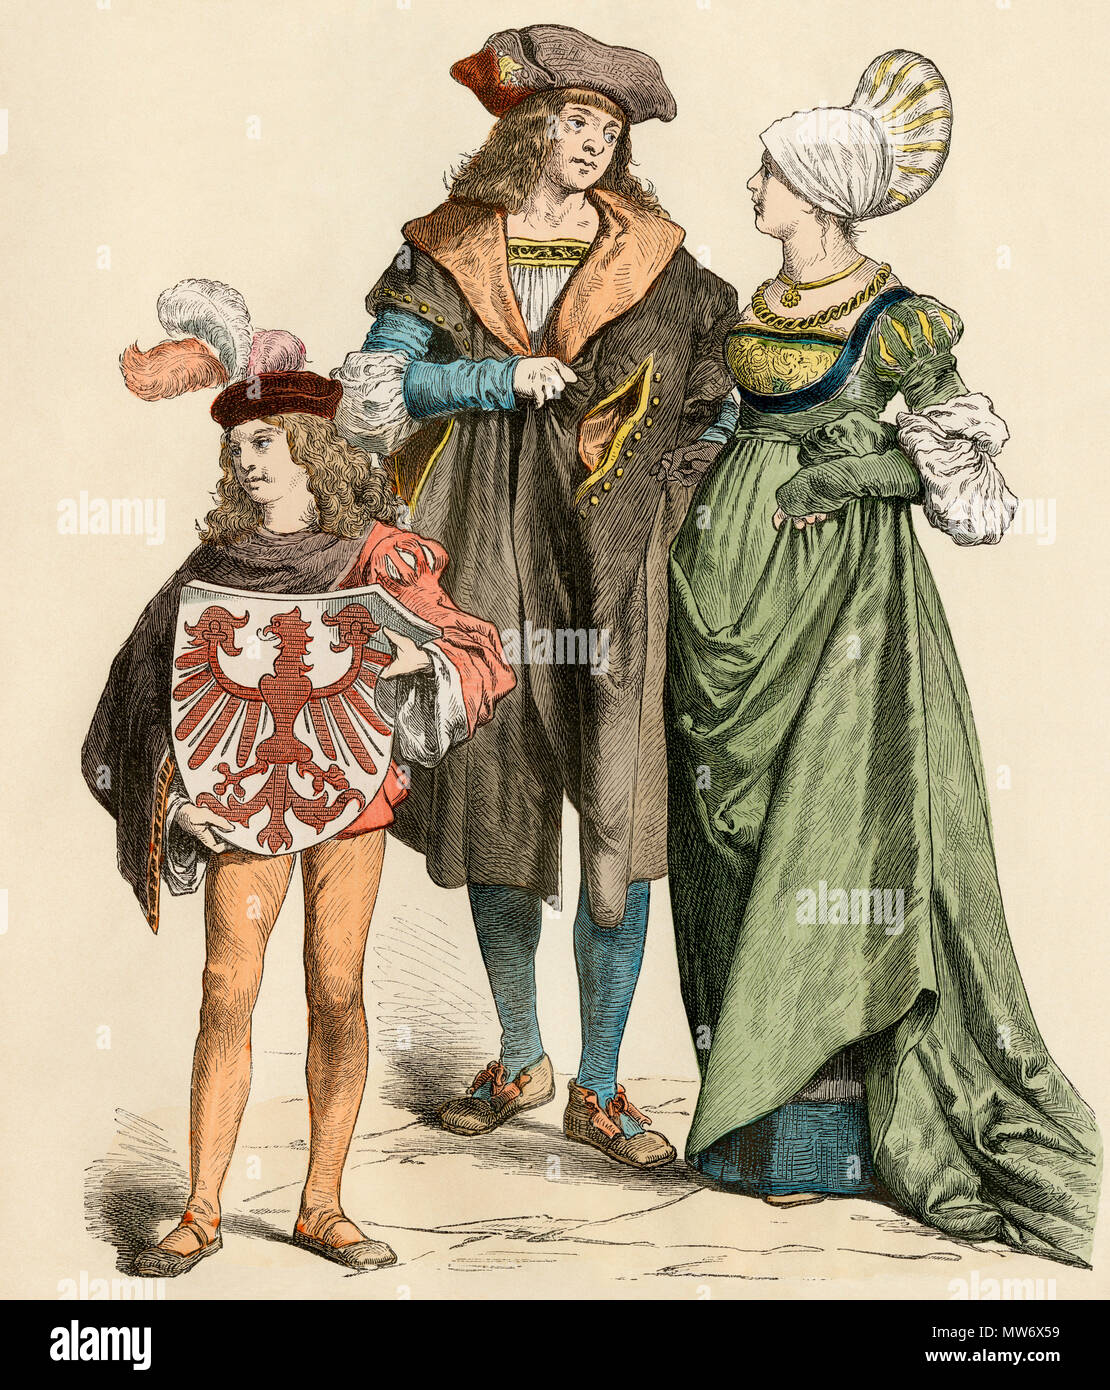 Prosperous middle-class urban Germans, or burghers, 1500s. Hand-colored print - Stock Image